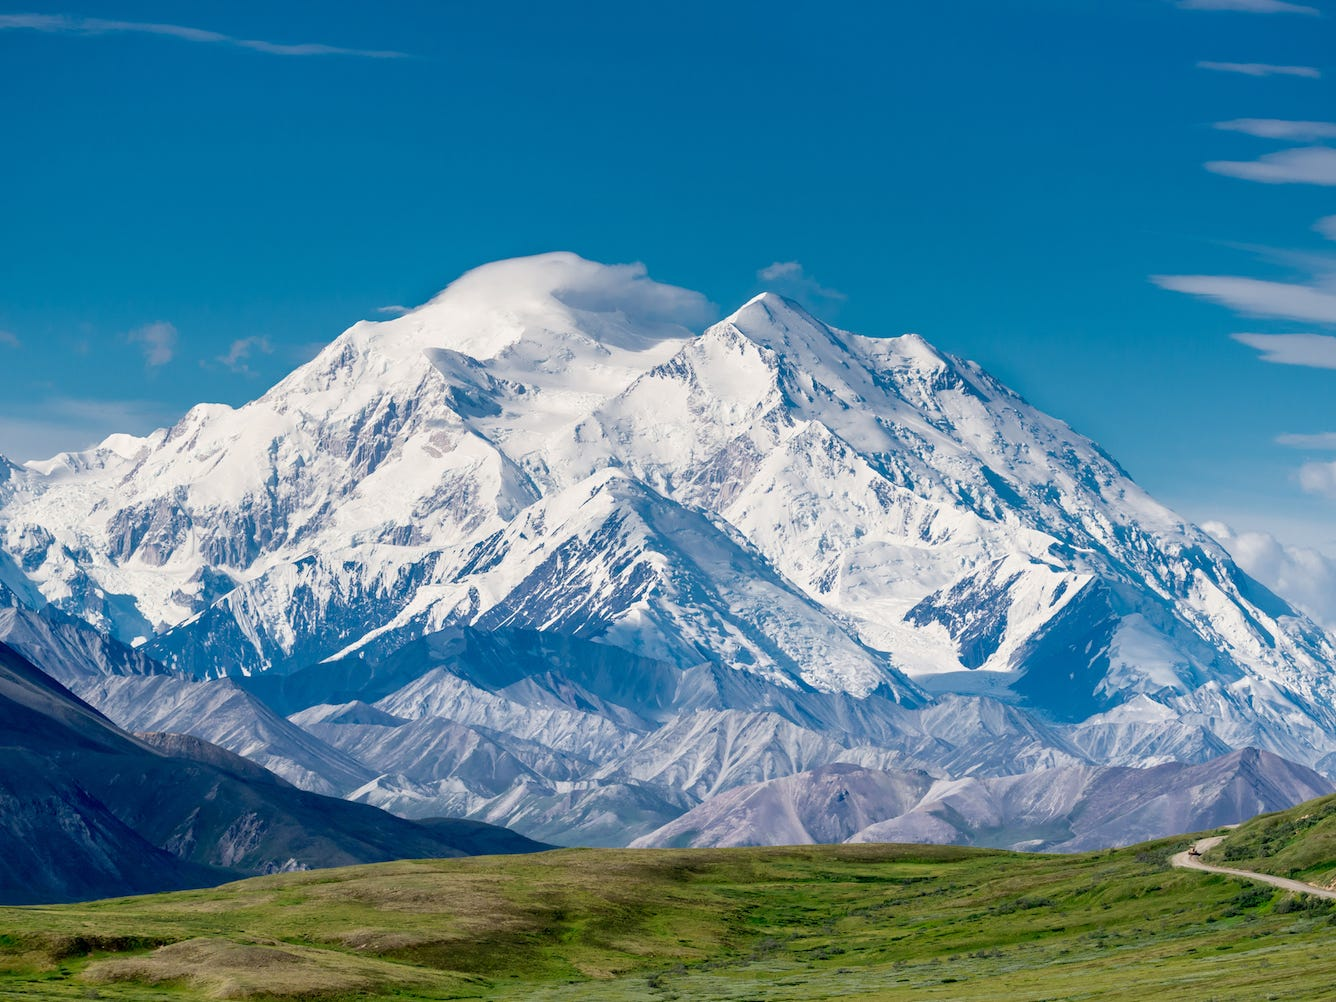 "Slide 11 of 11: The tallest mountain in the US was known as Mount McKinley from 1917 to 2015, named for President William McKinley. But McKinley never even visited Alaska and had no connection to the mountain or the state. President Obama's Secretary of the Interior Sally Jewell restored the mountain's local Athabascan name, Denali, in 2015. ""Denali"" means ""the great one"" or ""the high one,"" and the mountain is central to the Athabascans' creation story.Read more:I'm a member of the Navajo Nation, and my people are dying from the coronavirus. We're facing the virus head-on with limited access to healthcare and supplies.8 of the biggest misconceptions people have about Native Americans7 things you should never say to a Native American"